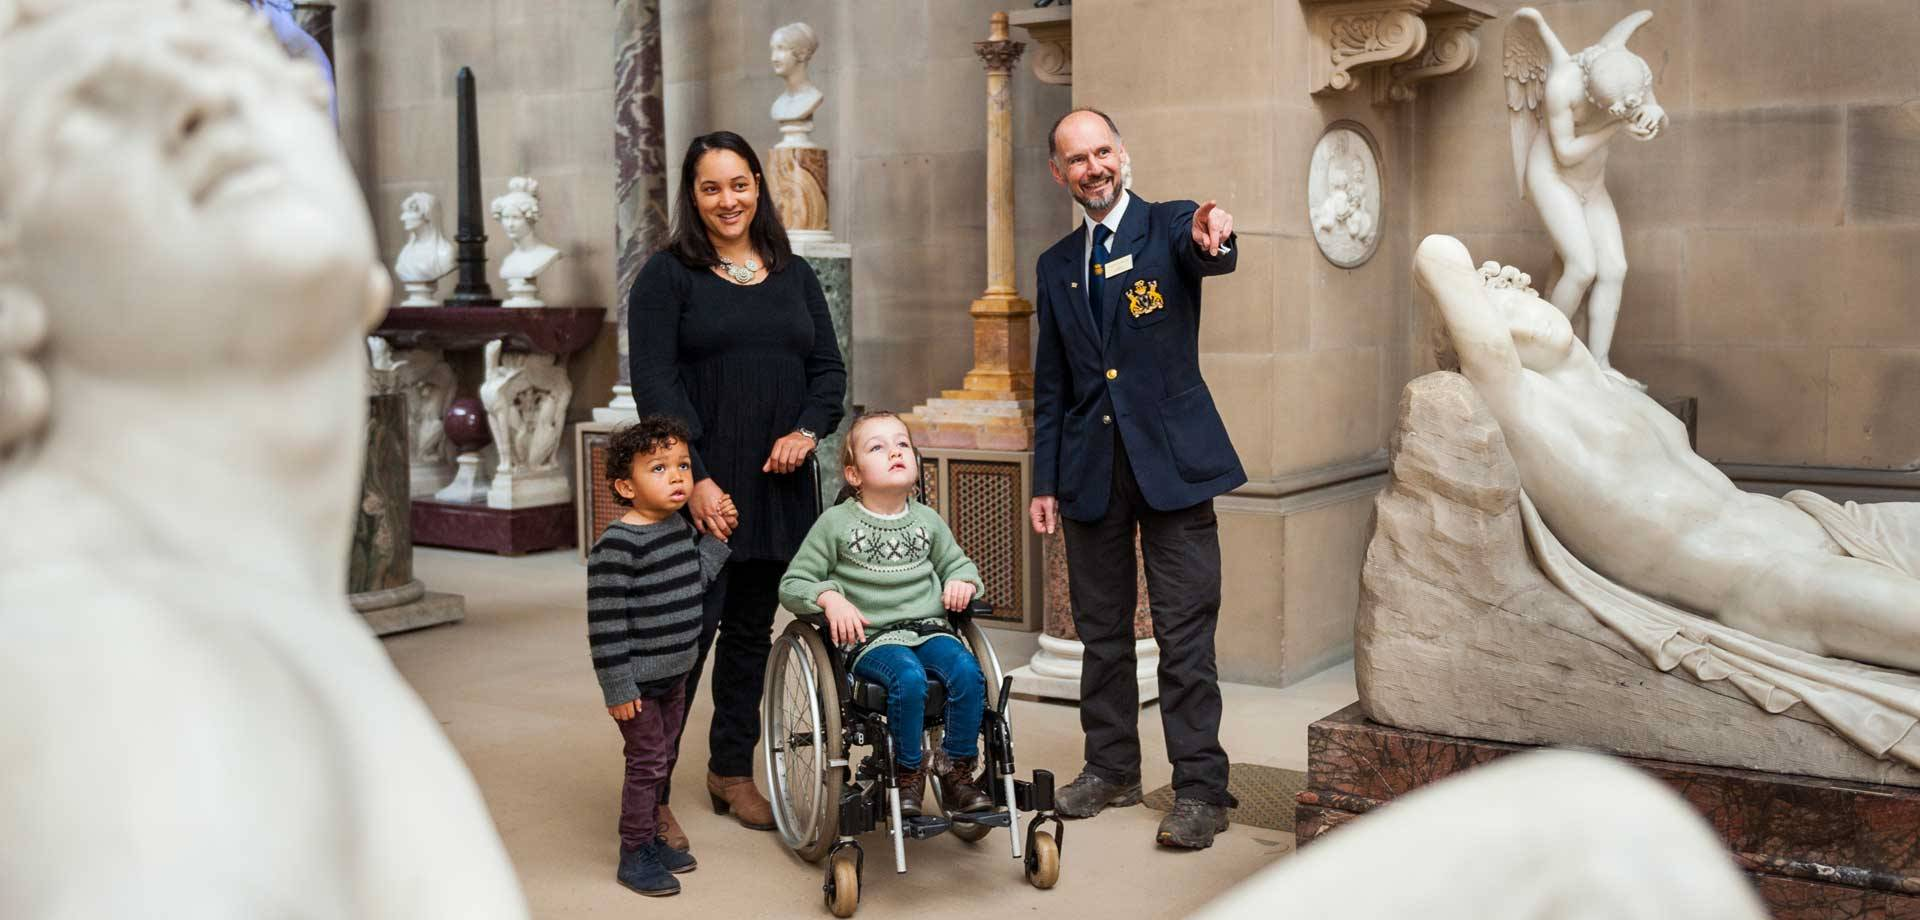 Visitors with mobility impairments